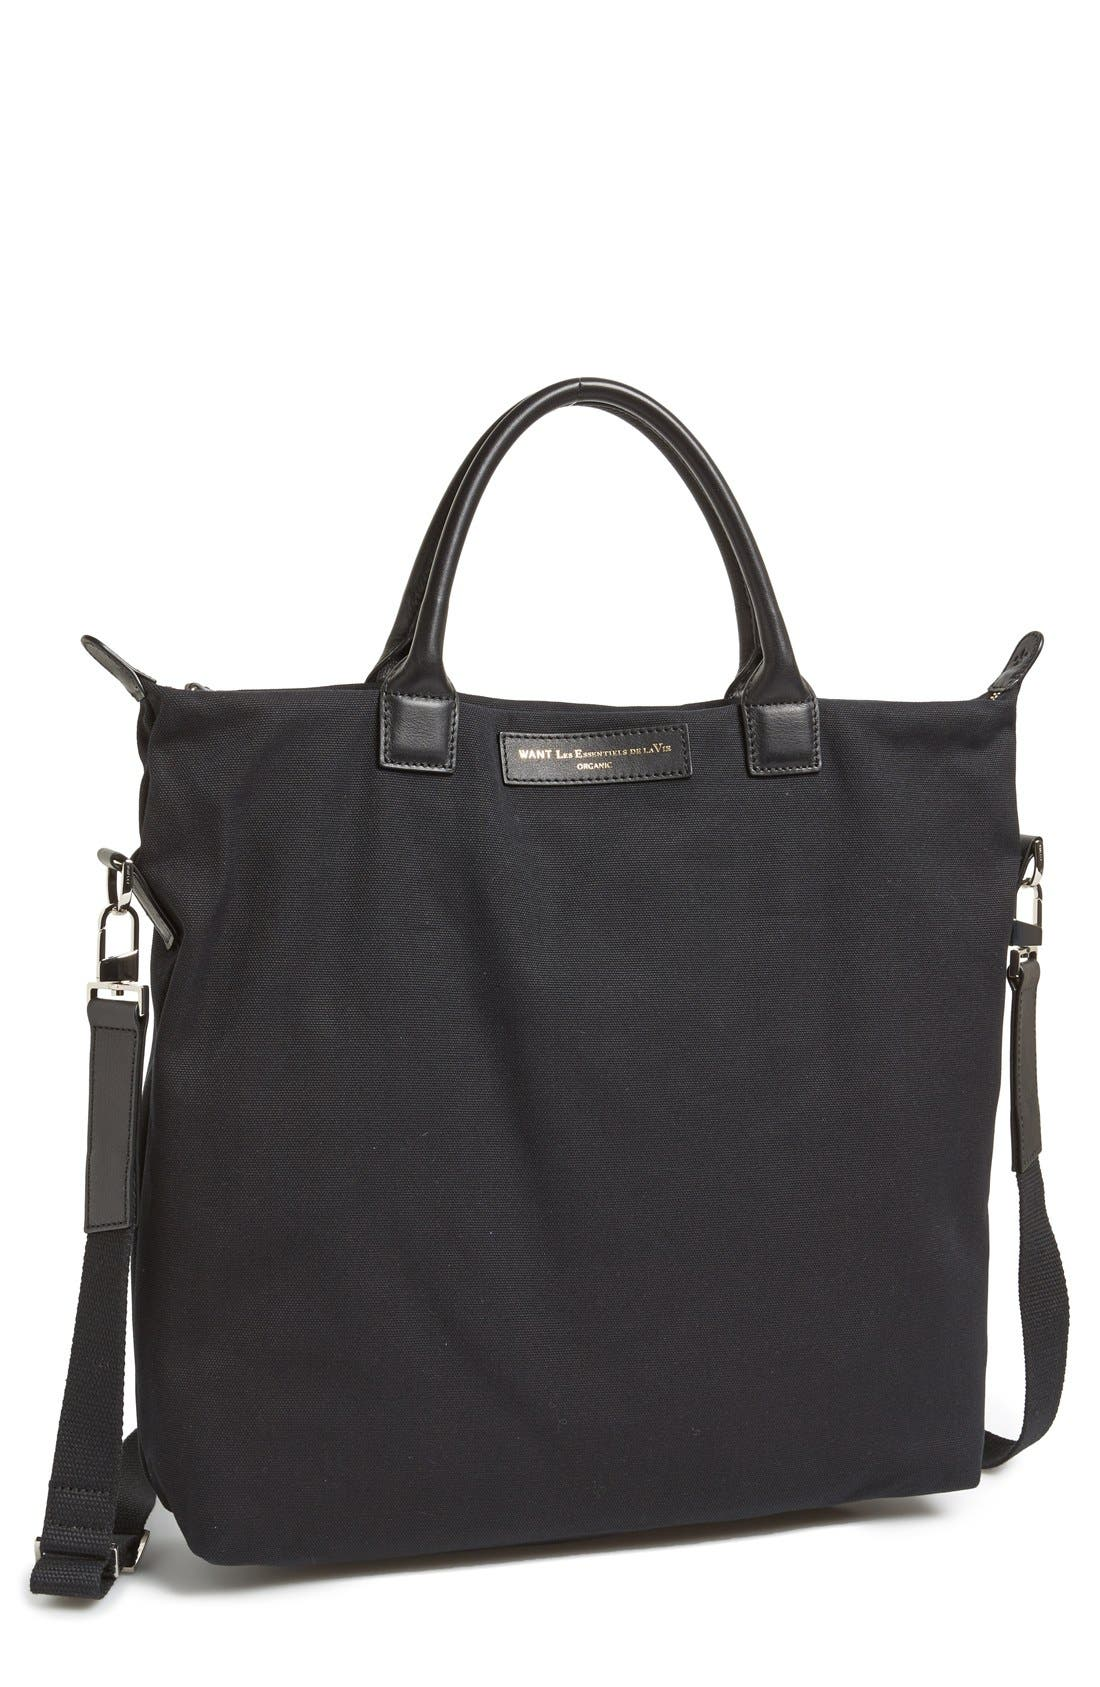 Alternate Image 1 Selected - WANT LES ESSENTIELS 'O'Hare' Tote Bag